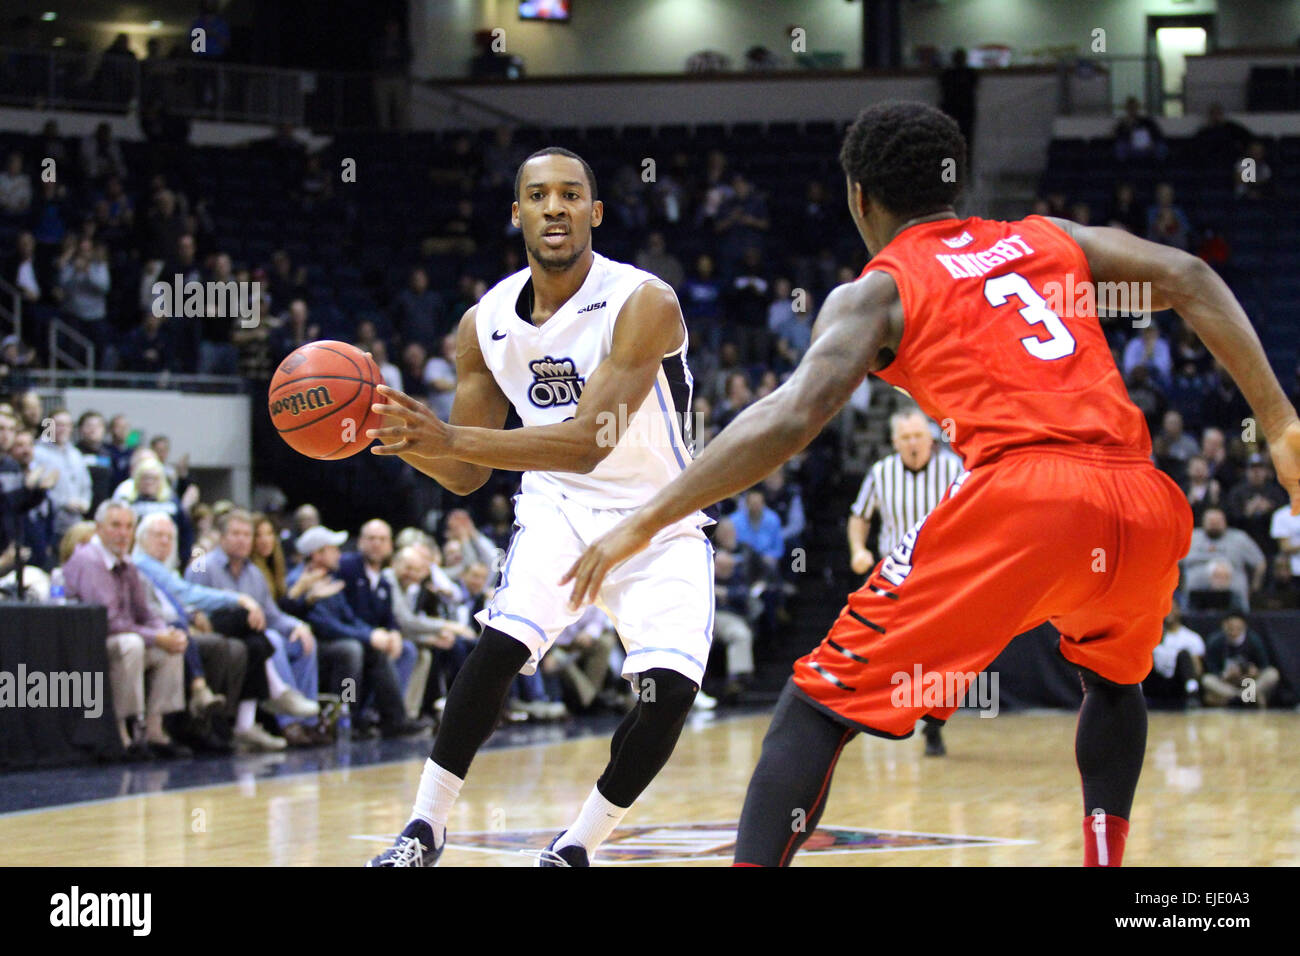 Norfolk, VA., USA. 23rd March, 2015. NCAA Basketball 2015: Old Dominion Monarchs guard Keenan Palmore (3) looks - Stock Image